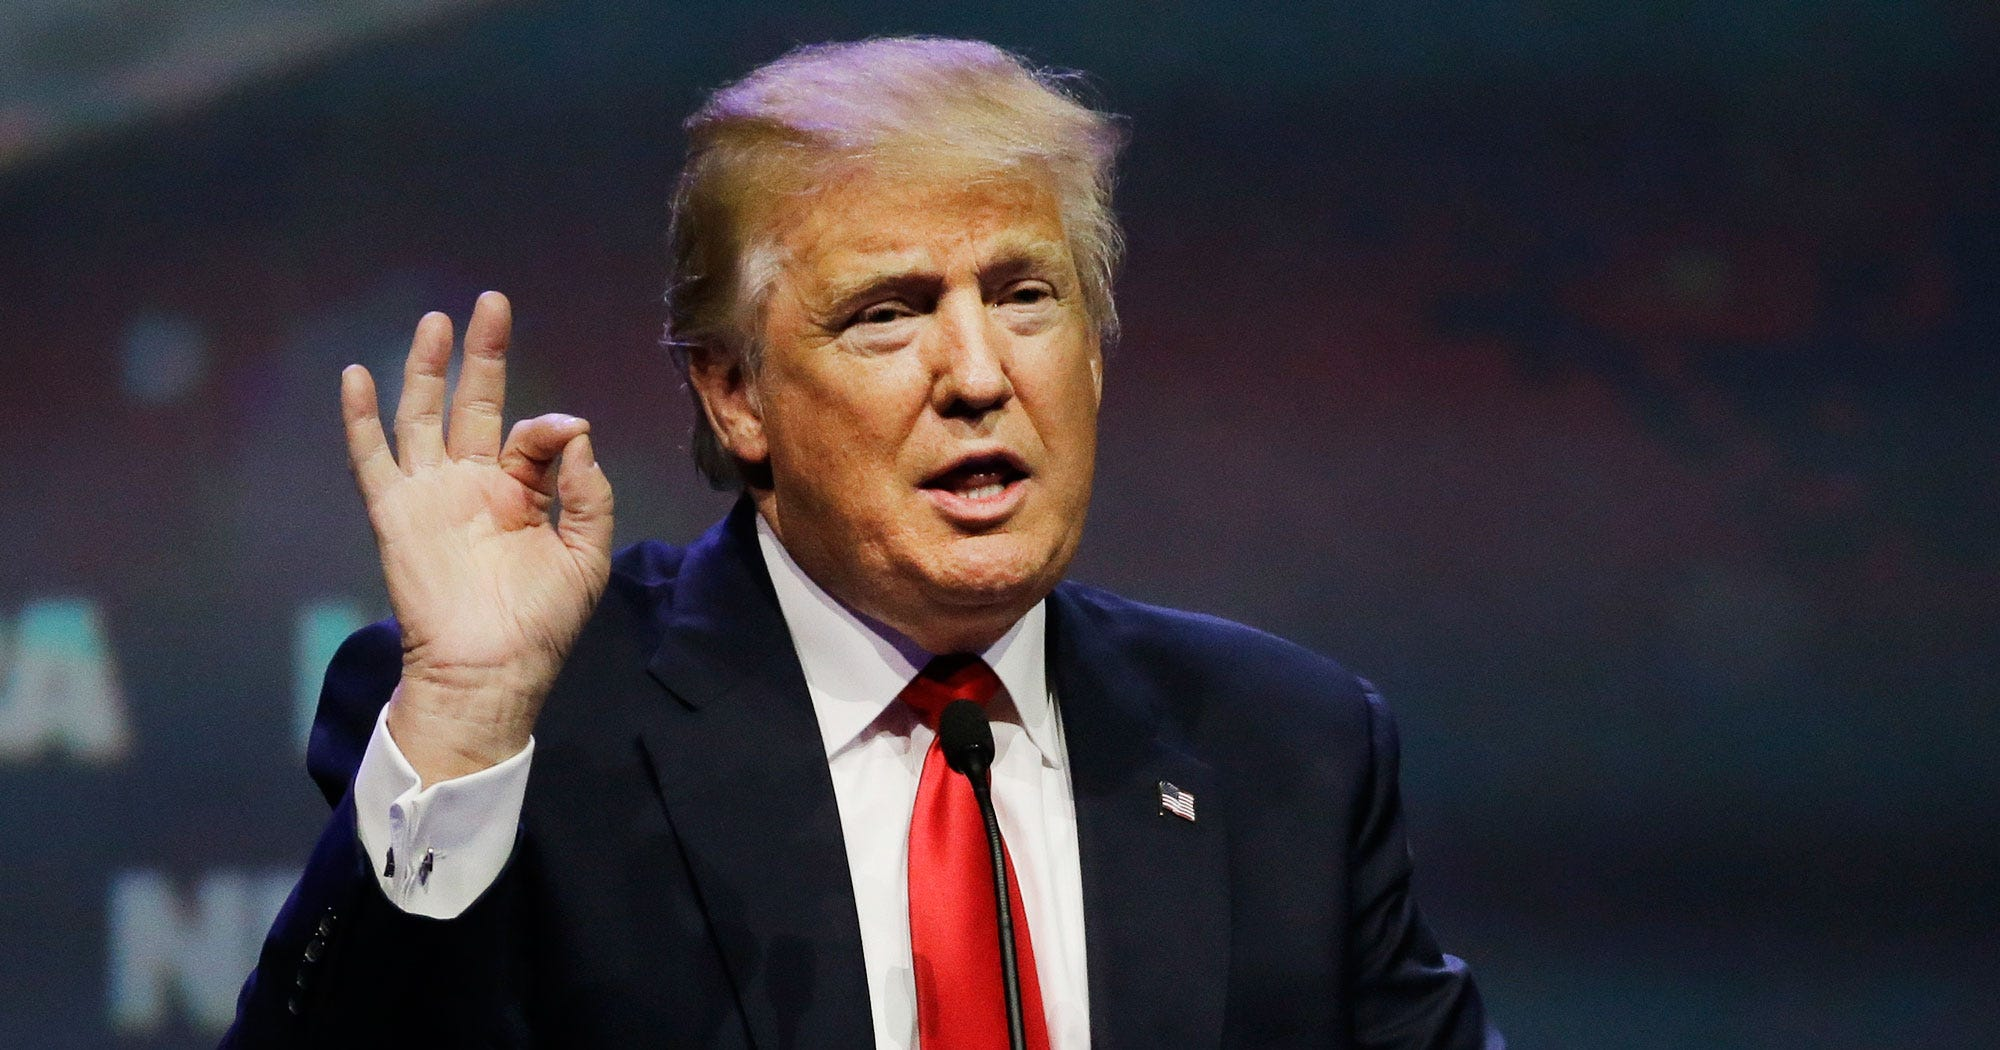 Donald Trump Stance On Gun Rights Right To Bear Arms